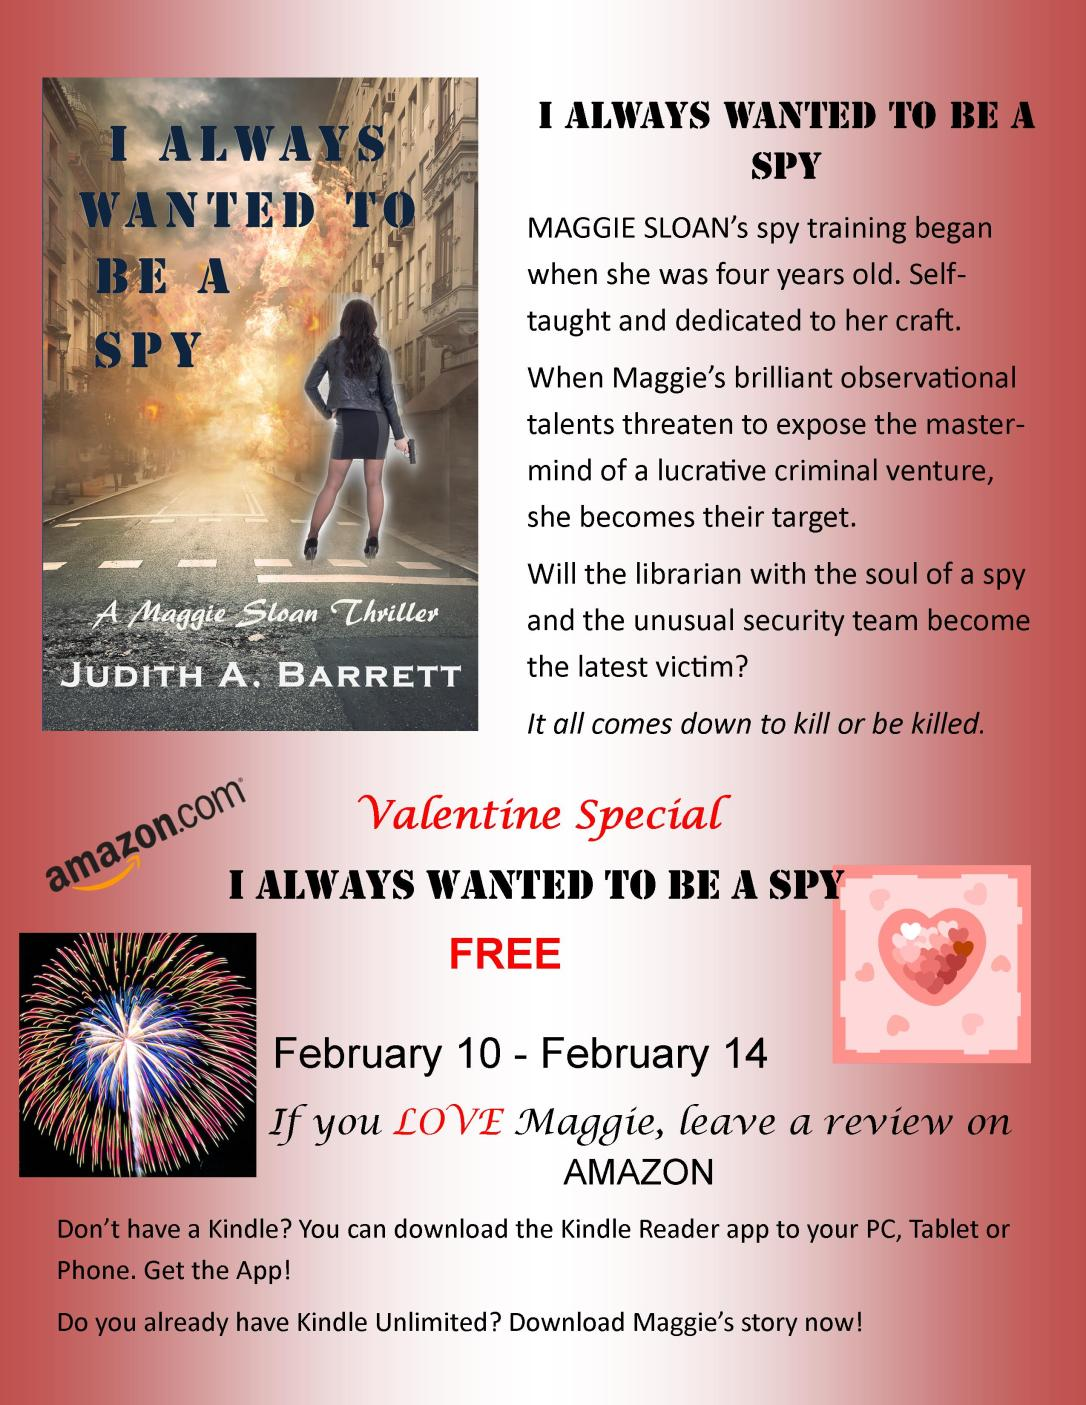 I always wanted to be a spy promo free feb 2019